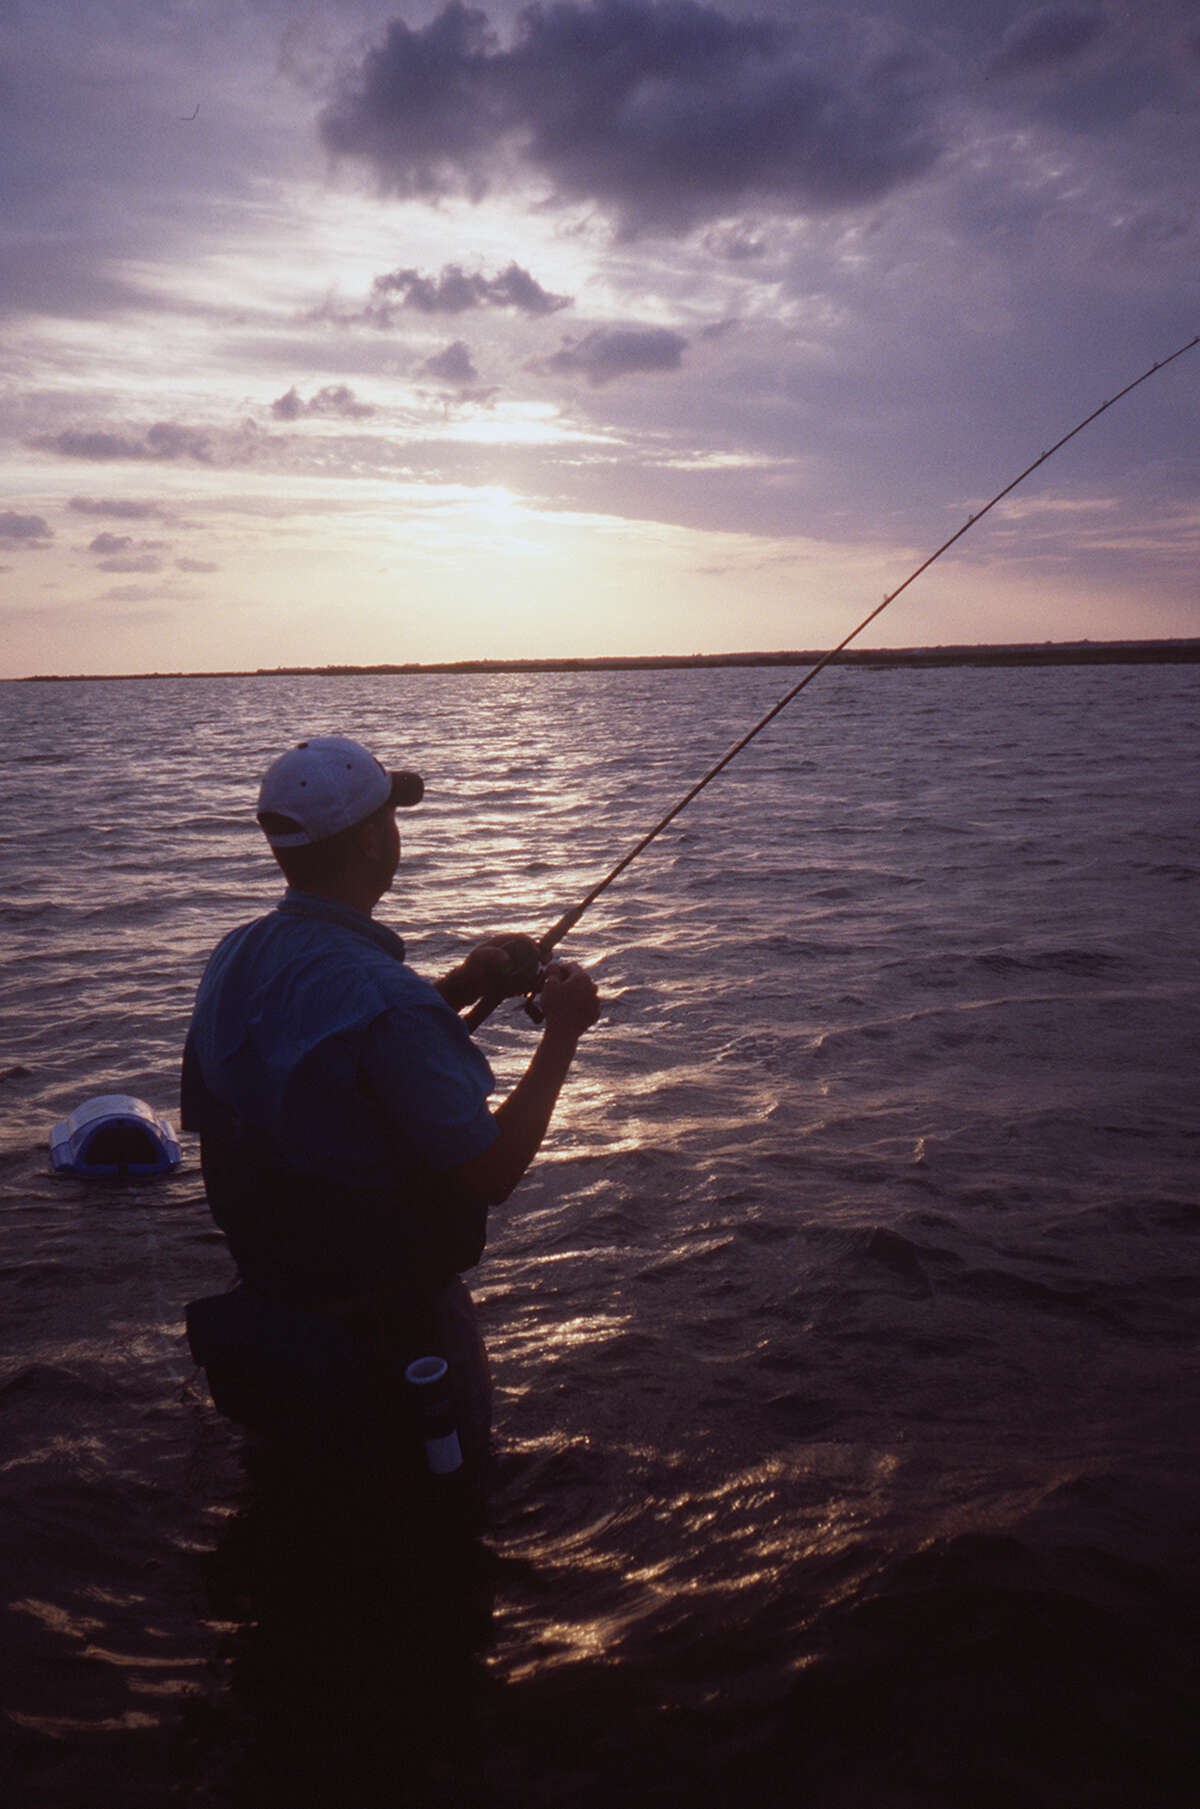 Texas Coast fishing. (v) Wade fishing the bayside flats is easily accessed on the back side of Mustang Island, home of Port Aransas. The hard-sand bottom is relatively free of structure, making the walking comfortable. Photo by Ron Henry Strait, staff. April 2002.